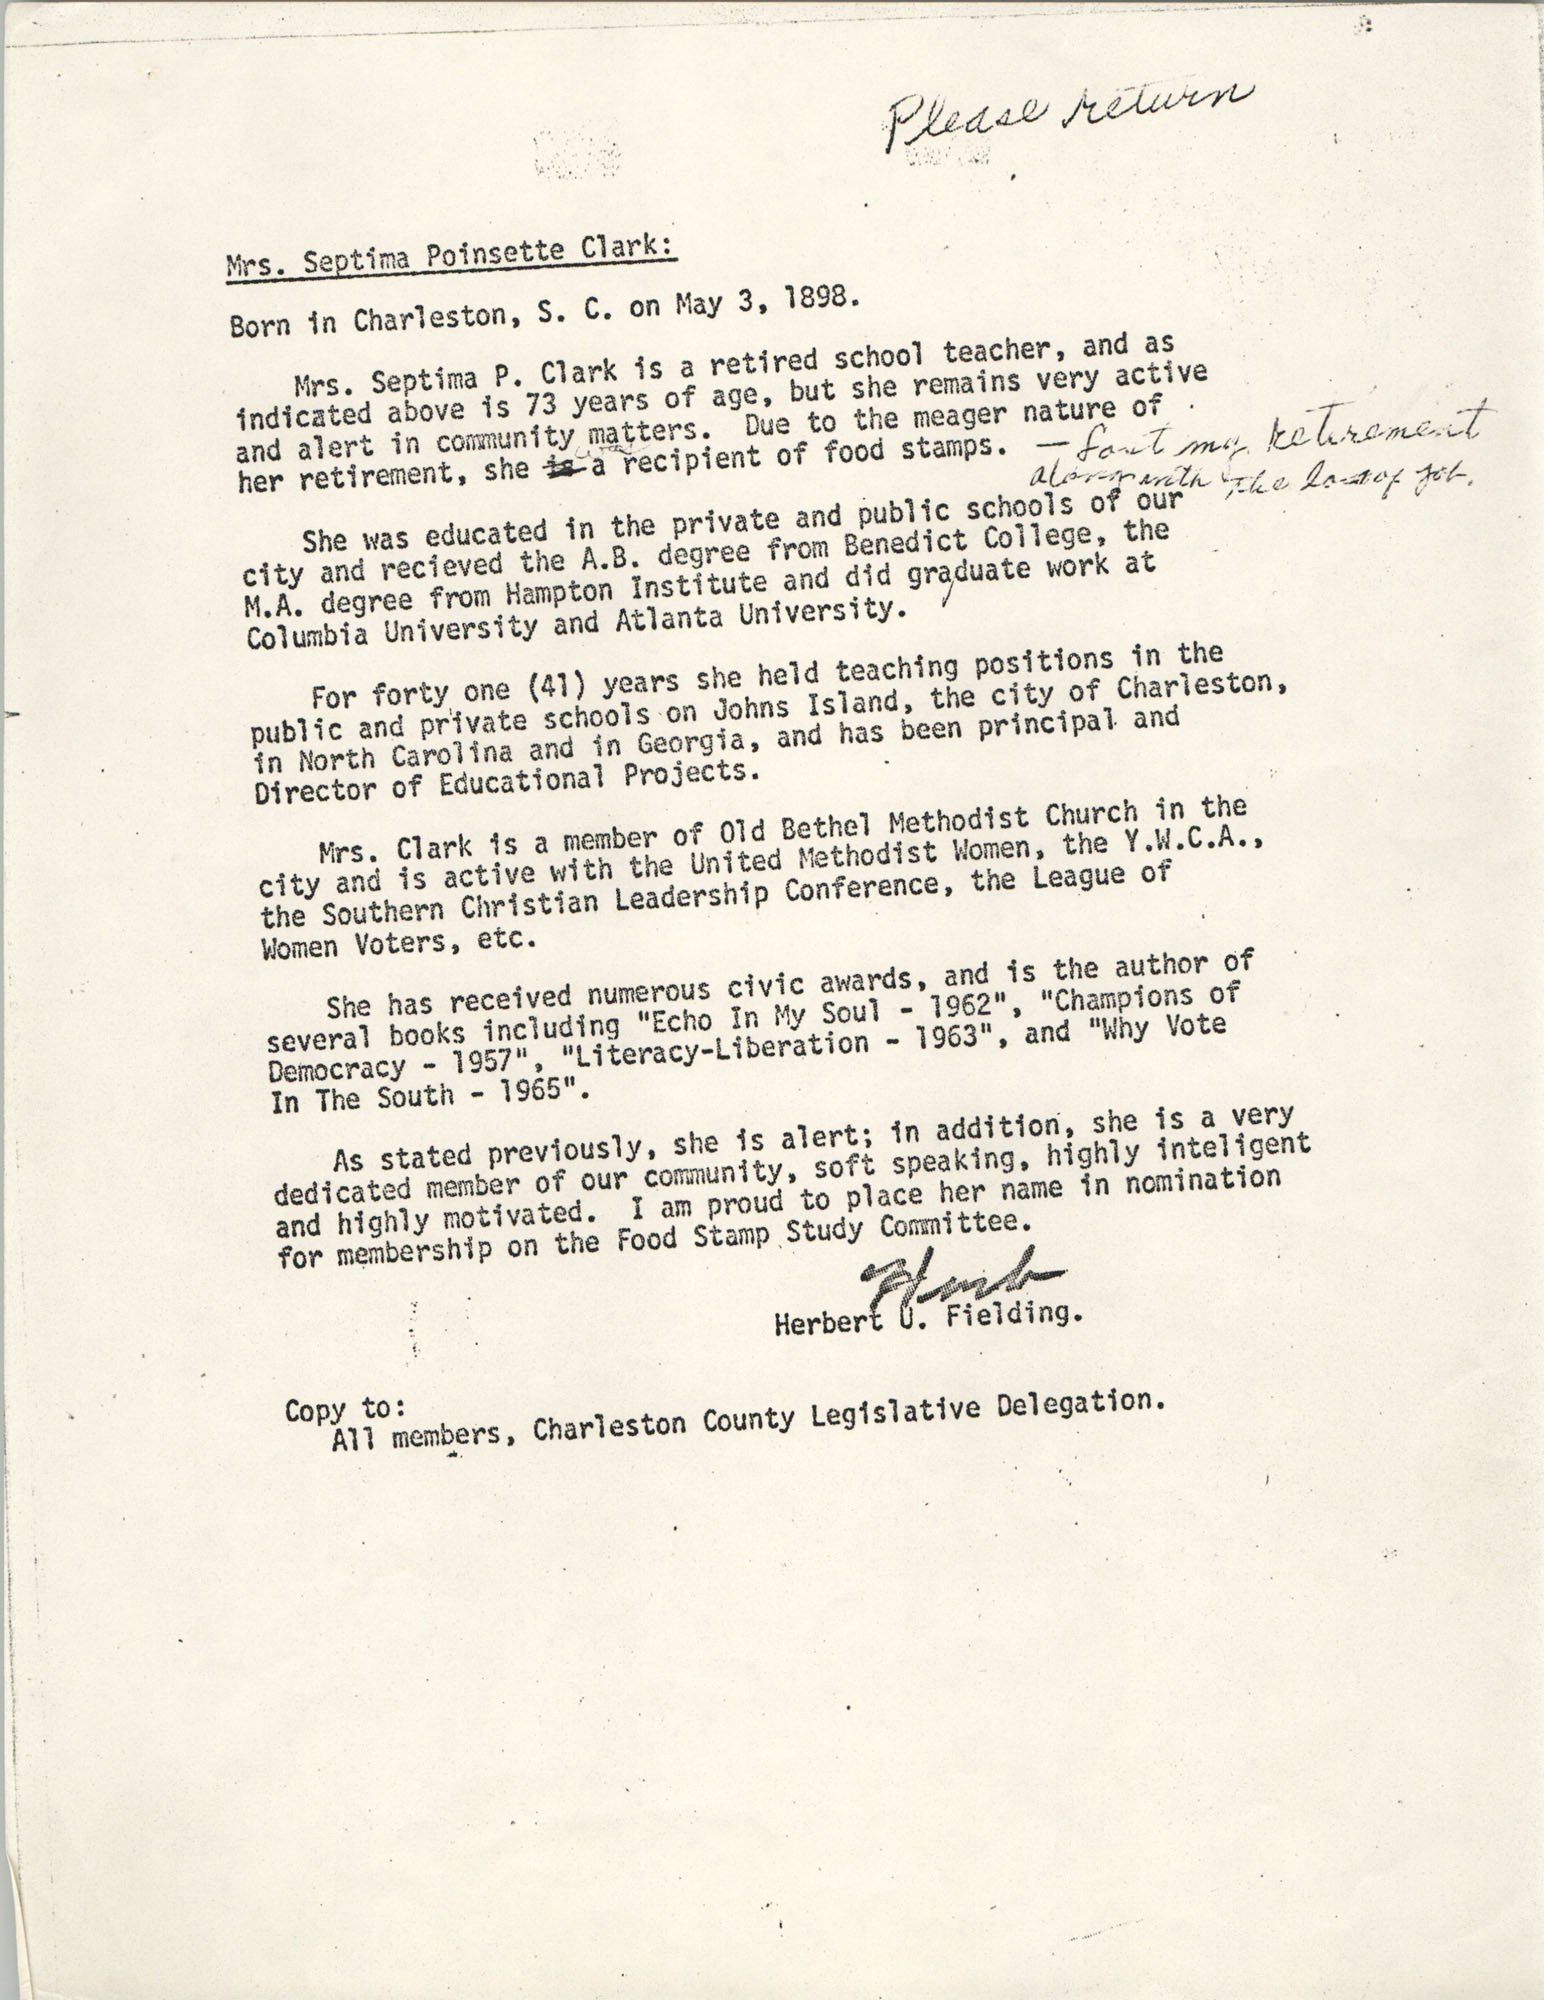 Nomination letter for Mrs. Septima Poinsette Clark